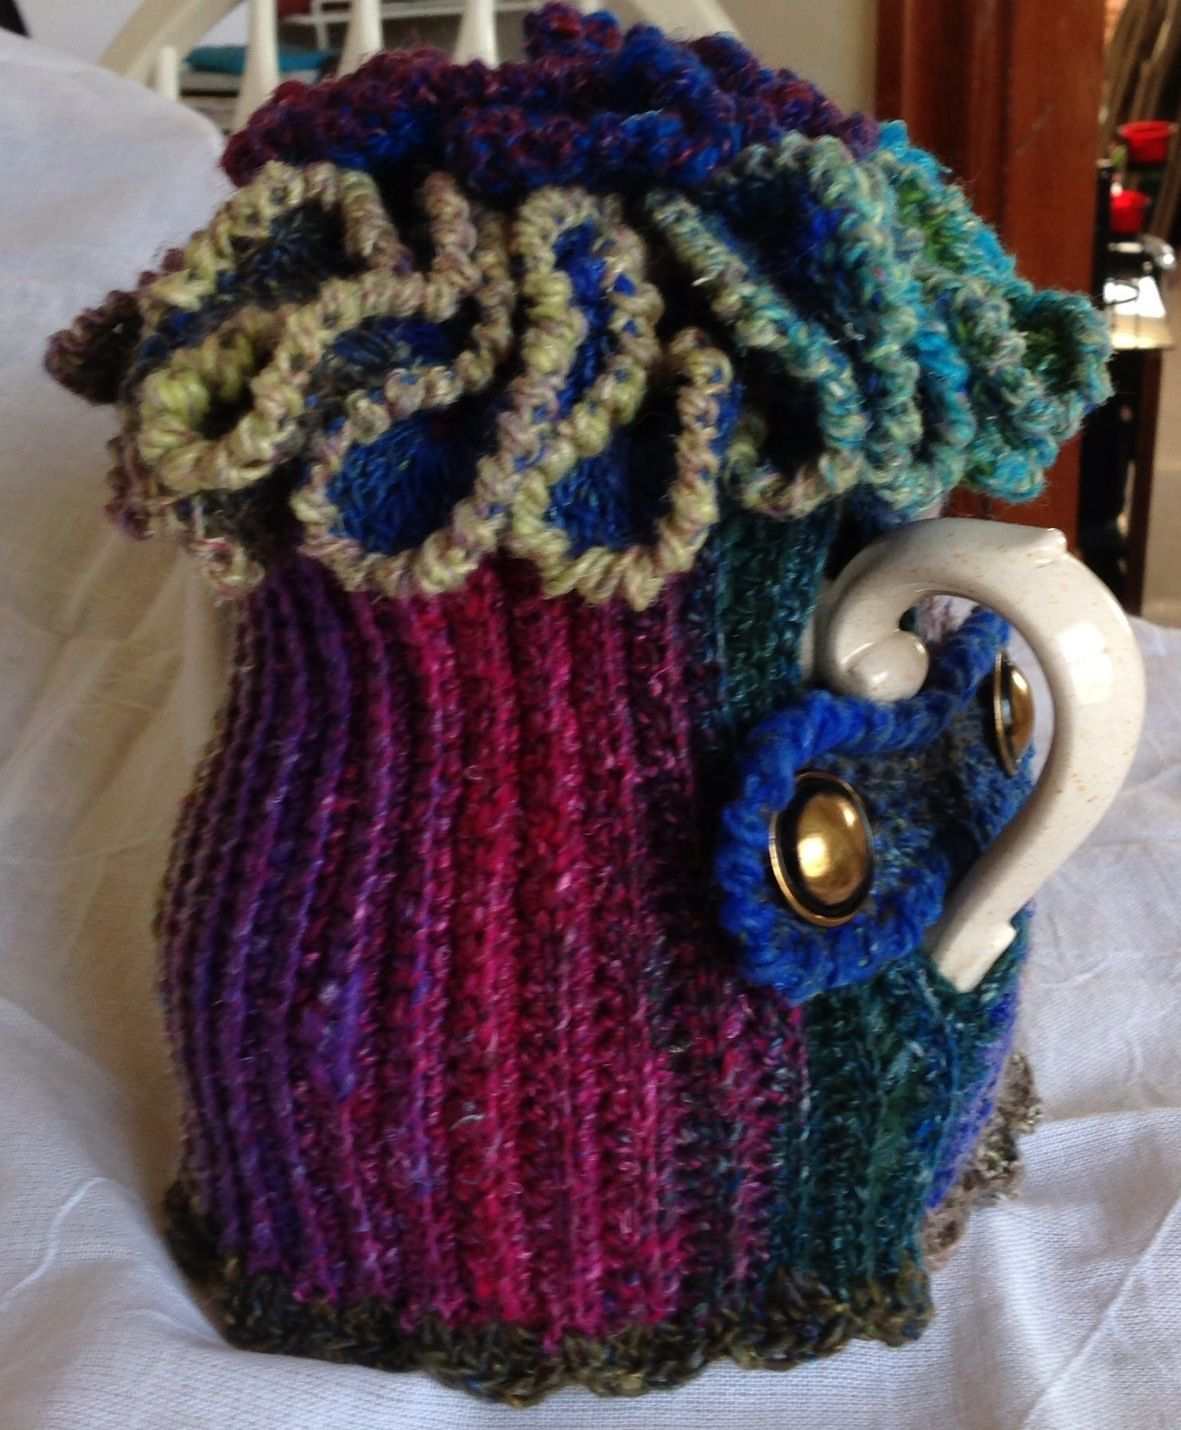 I call this my Ruffle Tea Cozy - made with Noro Silk Garden Sock and 2 vintage buttons